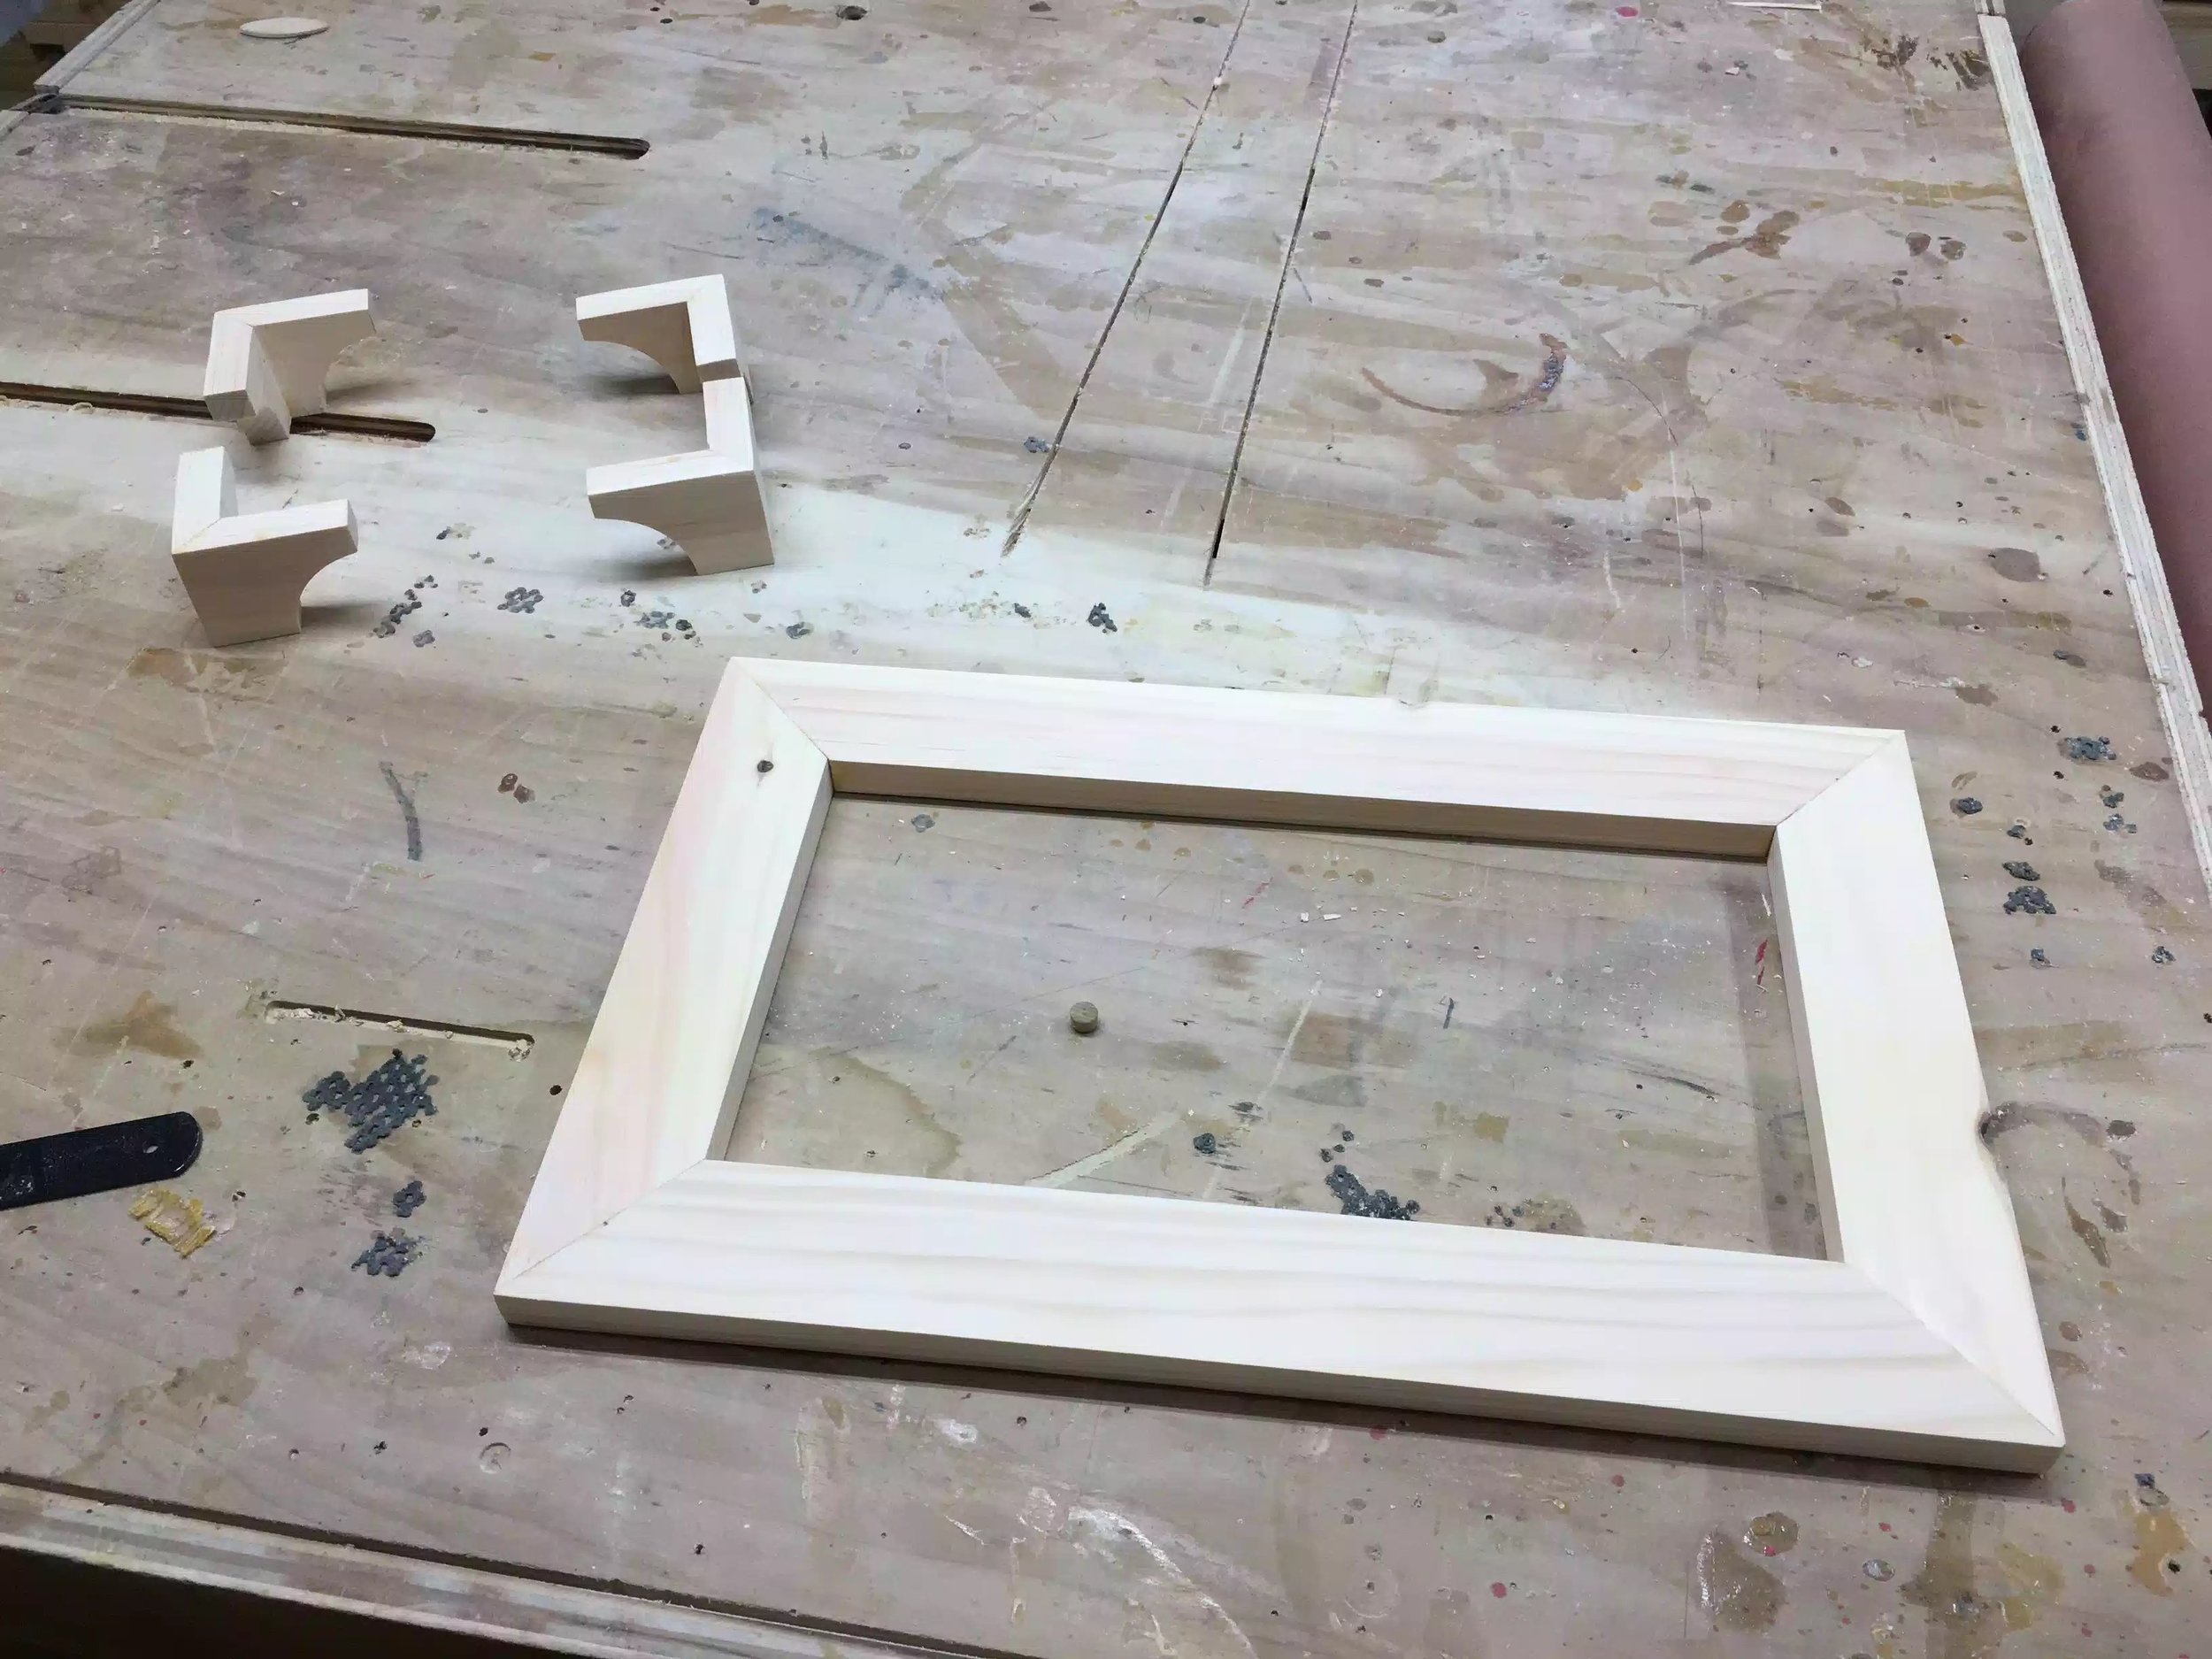 Here is the mitered frame I made using biscuit joints, the bracket feet are attached to the bottom of this frame.